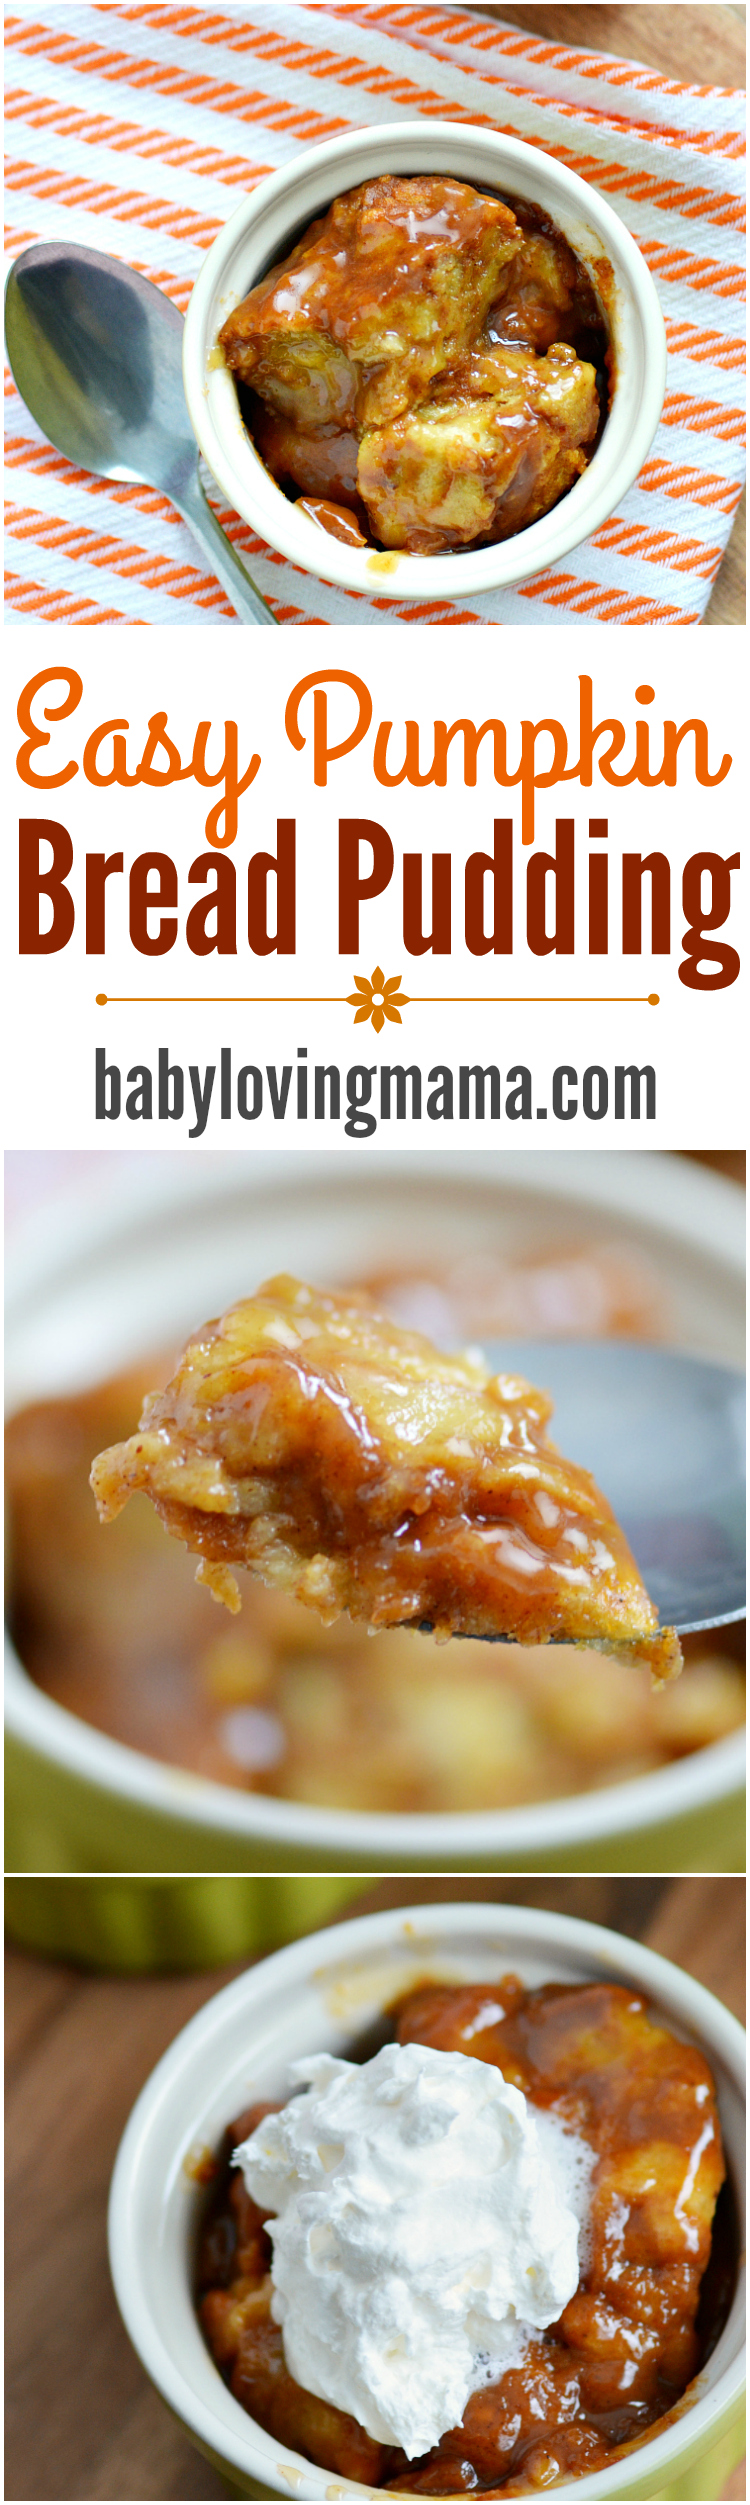 Easy Pumpkin Bread Pudding Recipe